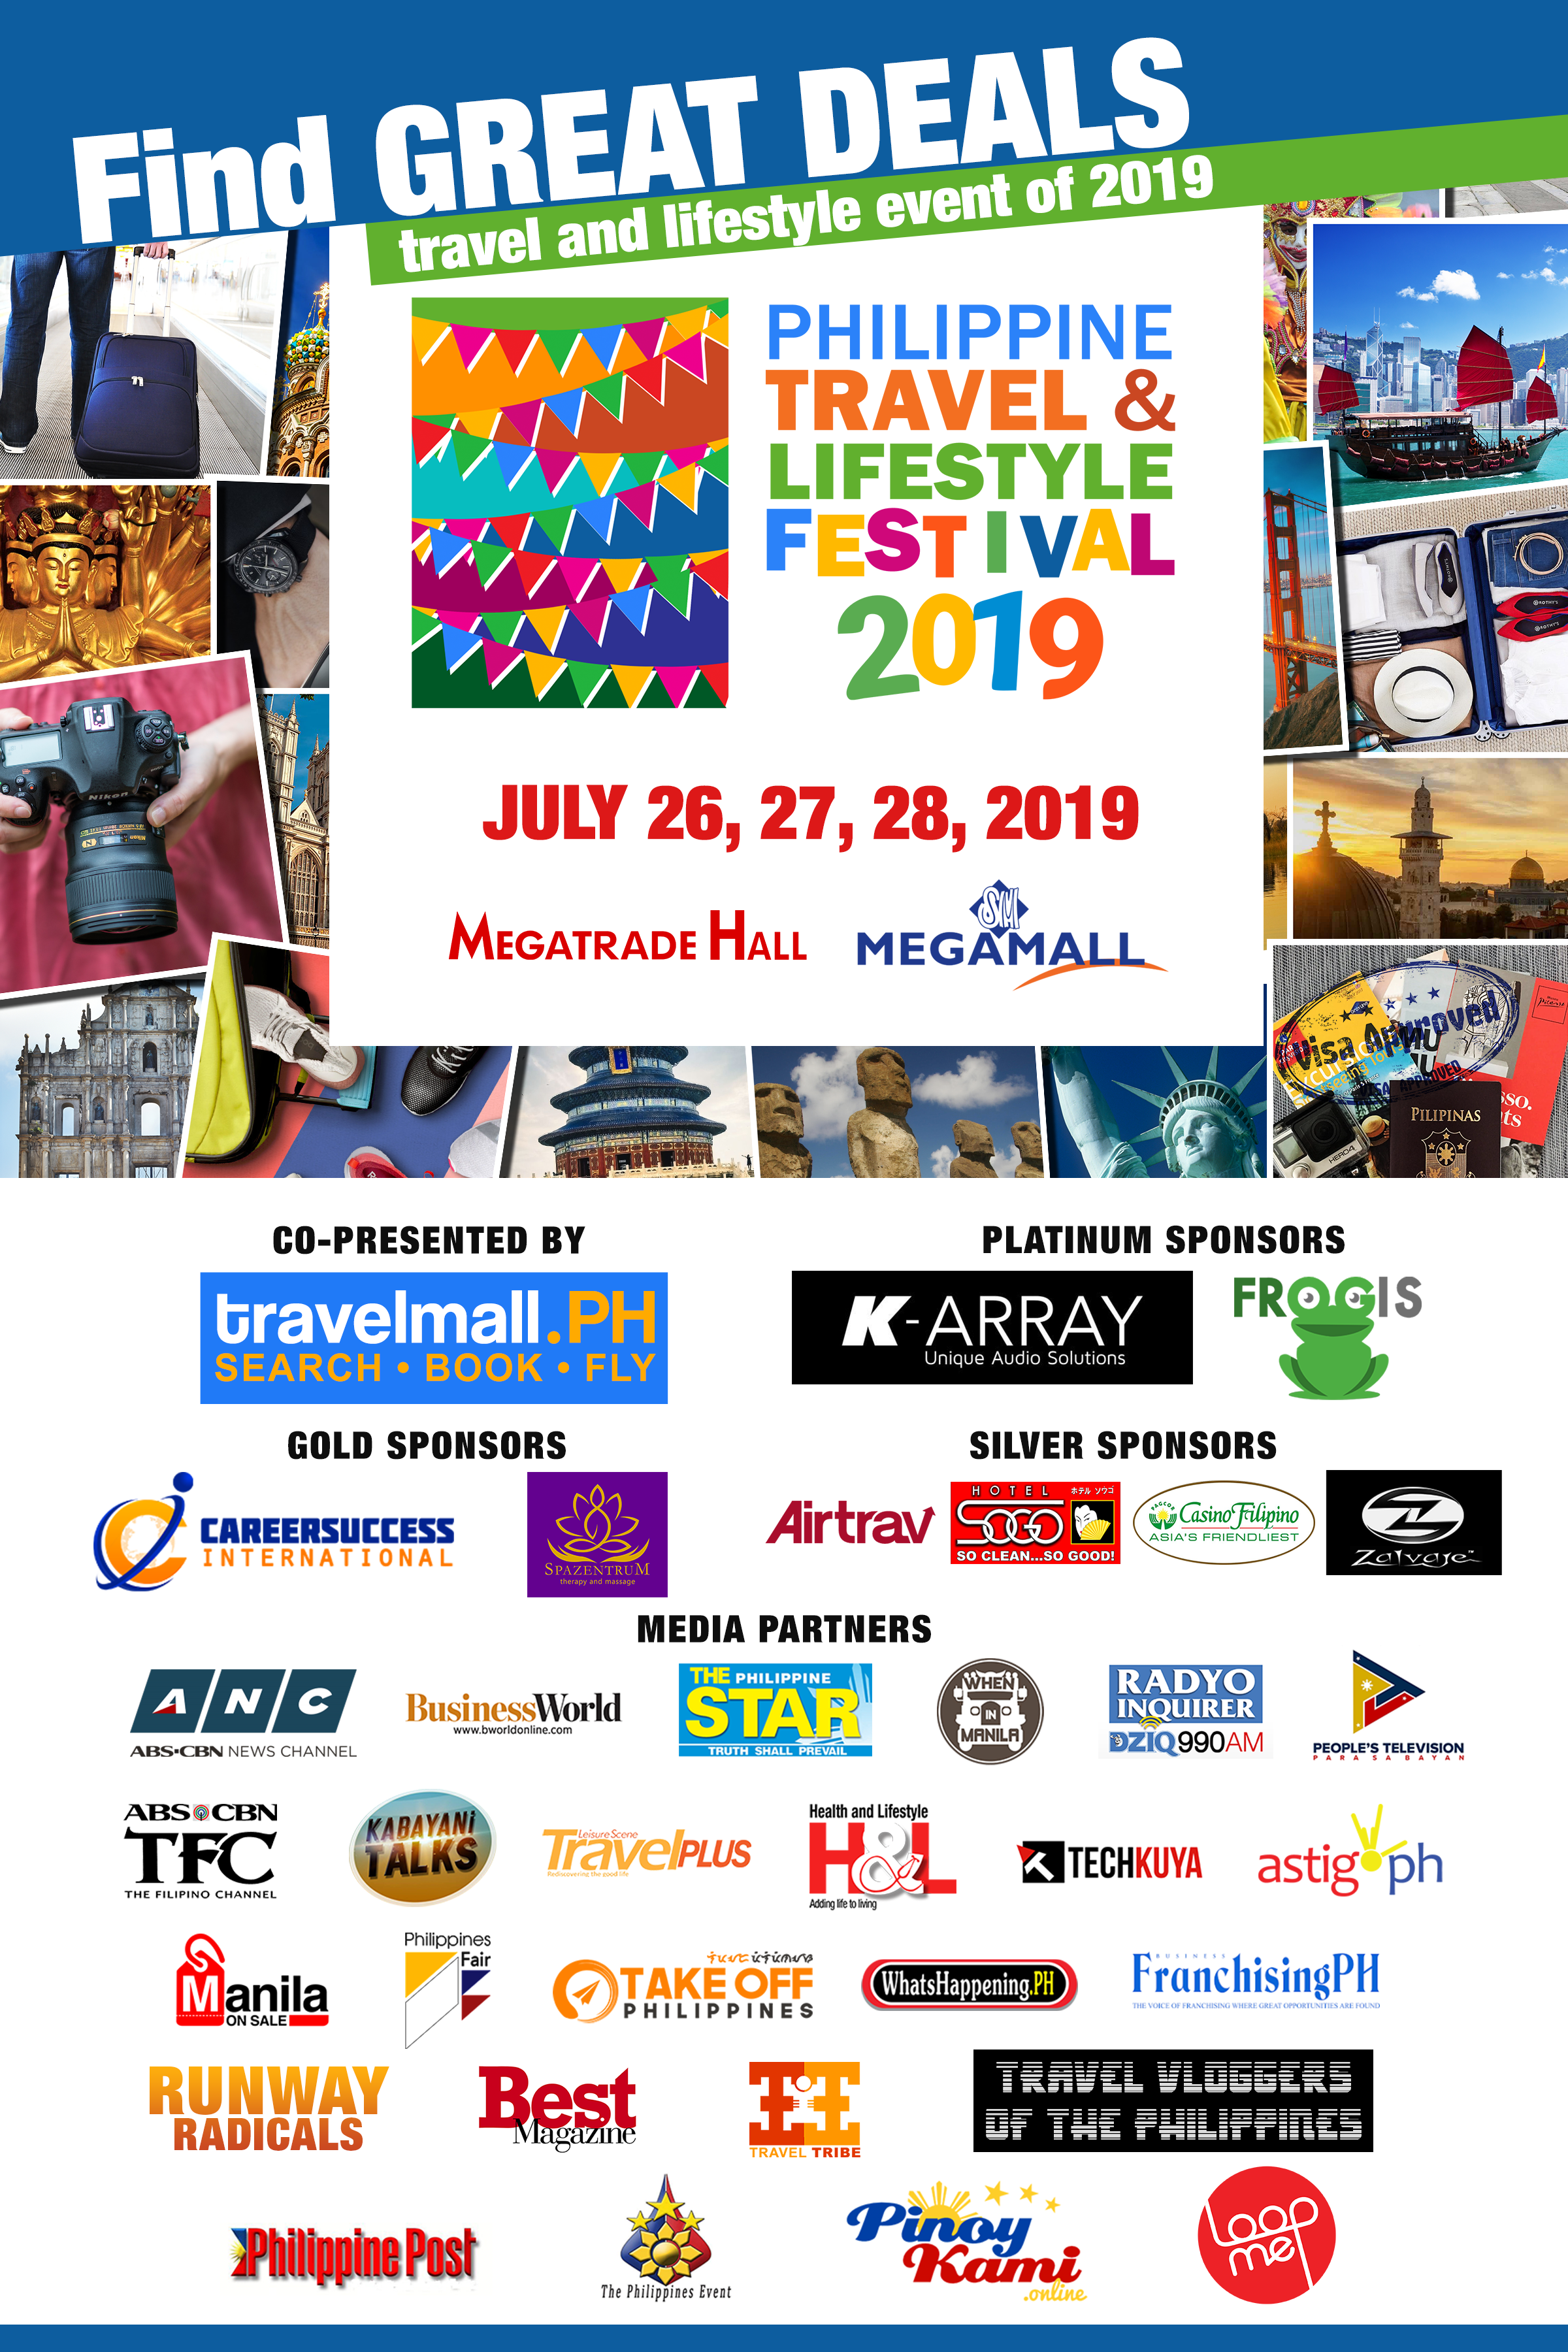 Philippine Travel & Lifestyle Festival 2019